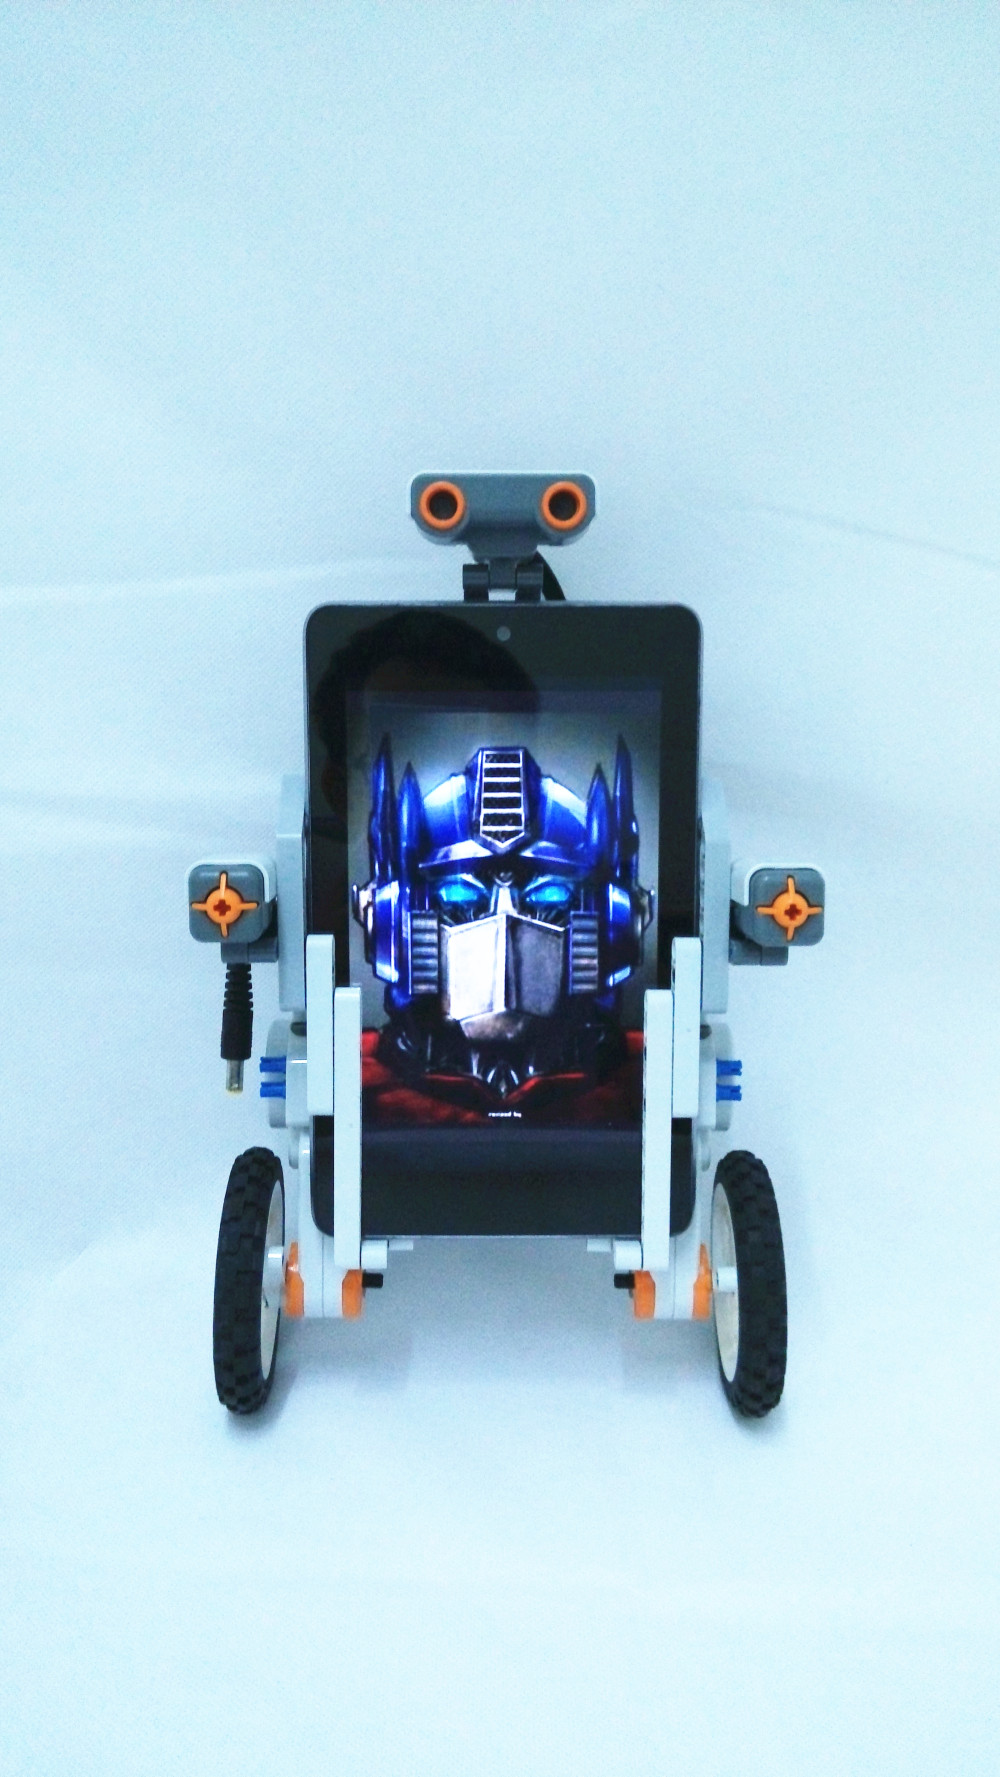 Picture of Add Nexus 7 to the Robot